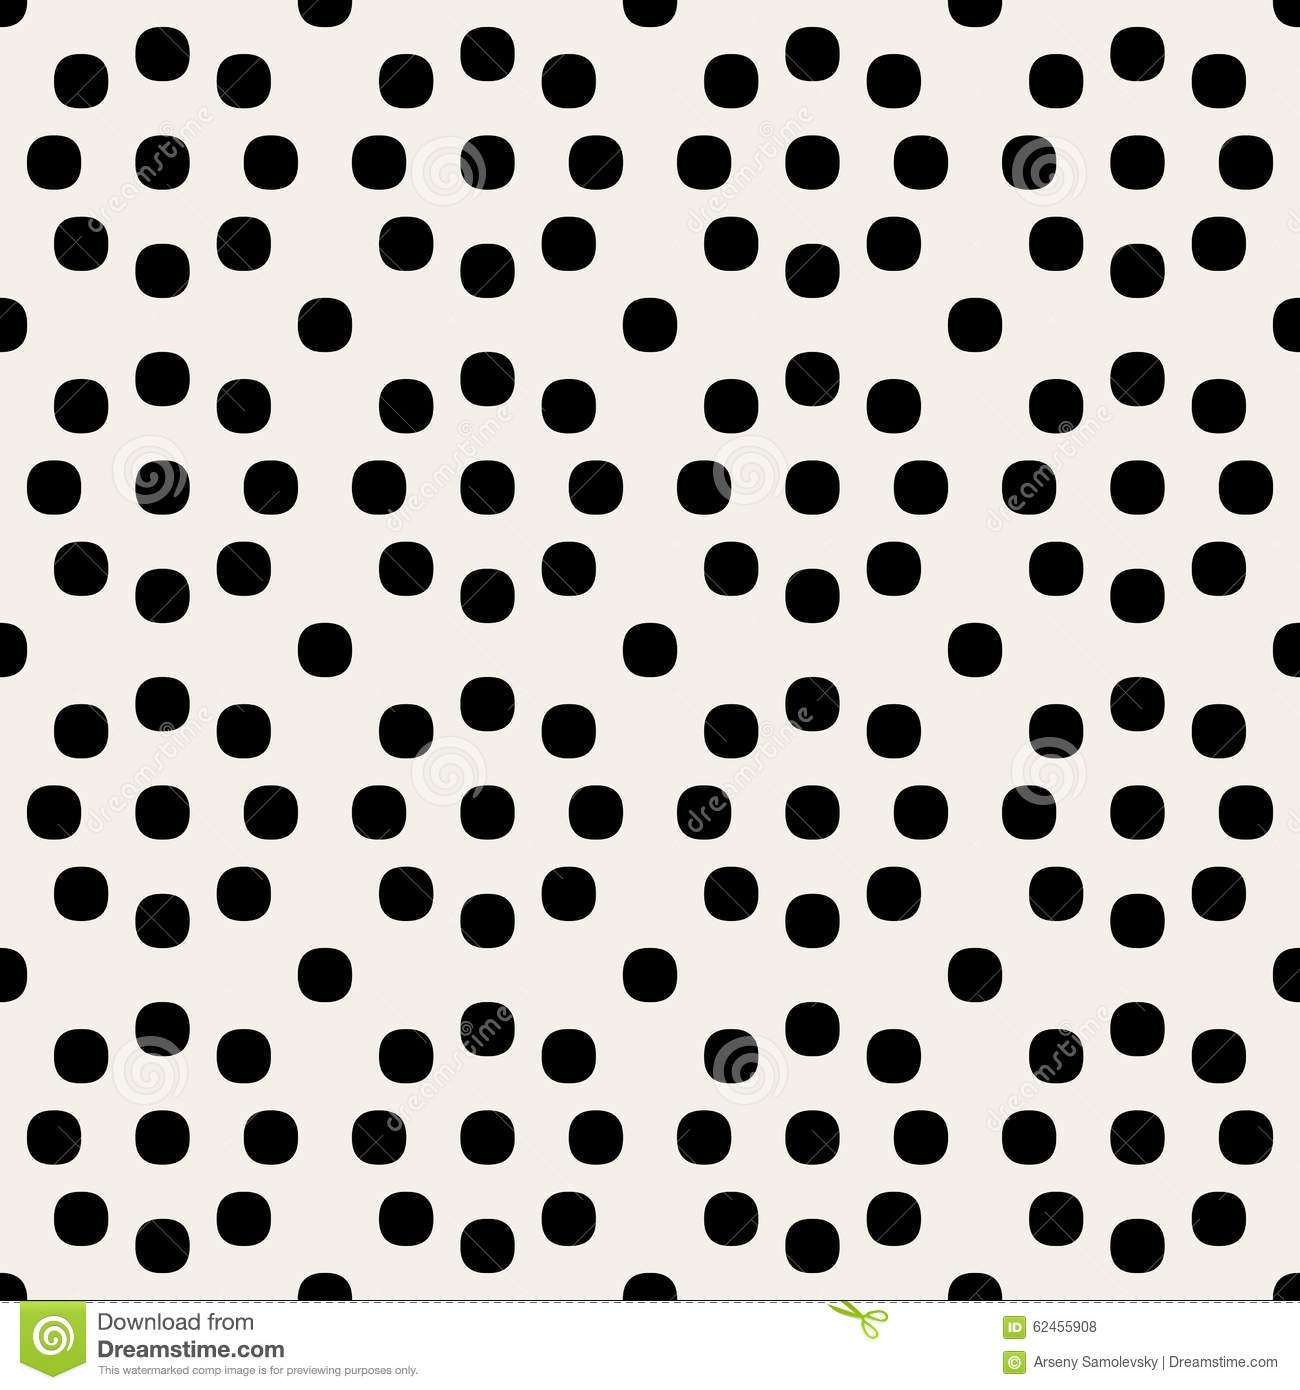 Vector Seamless Black and White Geometric Rounded Circles Retro Polka Dots Pattern